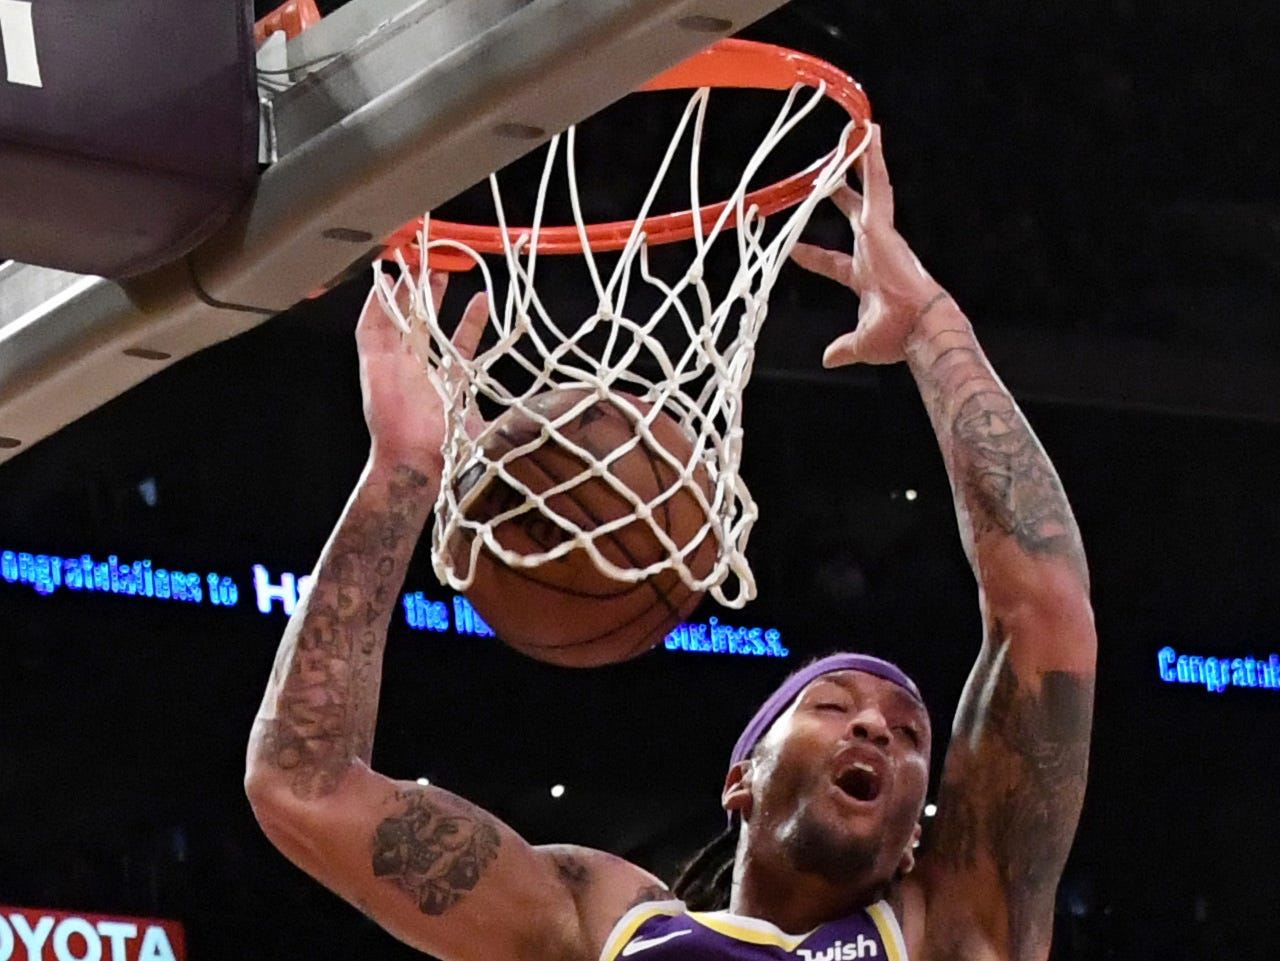 Los Angeles Lakers forward Michael Beasley (11) dunks the ball against the Detroit Pistons during the second half at the Staples Center on Wednesday, Jan. 9, 2019, in Los Angeles.